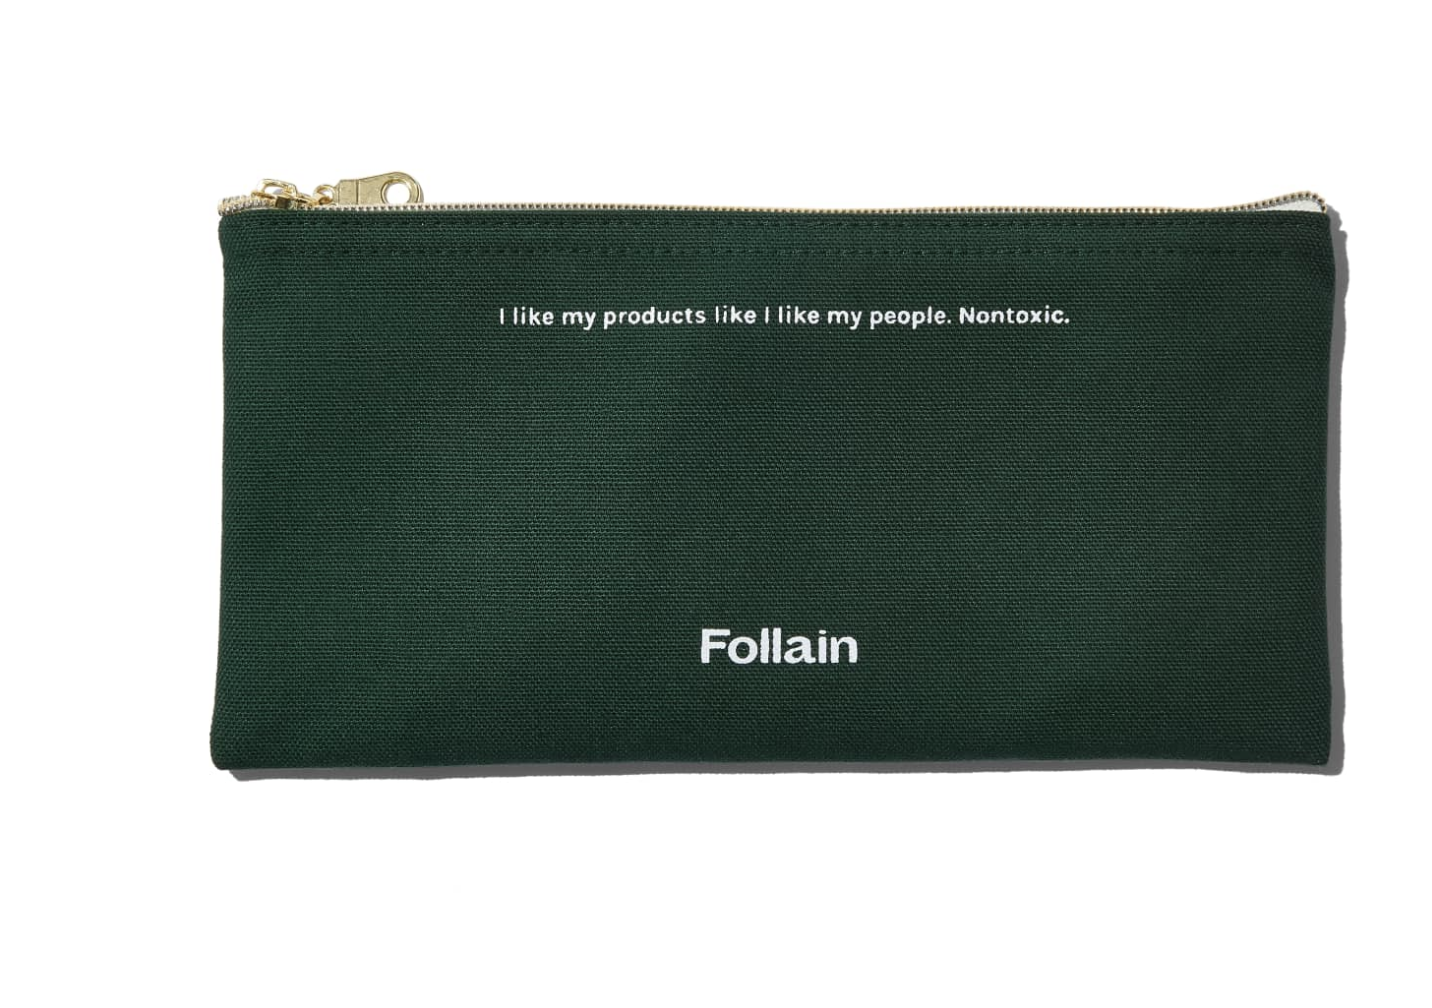 """FOLLAIN BAG - The cutest little green pouch that reads, """"I like my products like I like my people. Non-toxic."""" It's perfect for all your lip balms, to go make-up, or even used as a pencil pouch."""